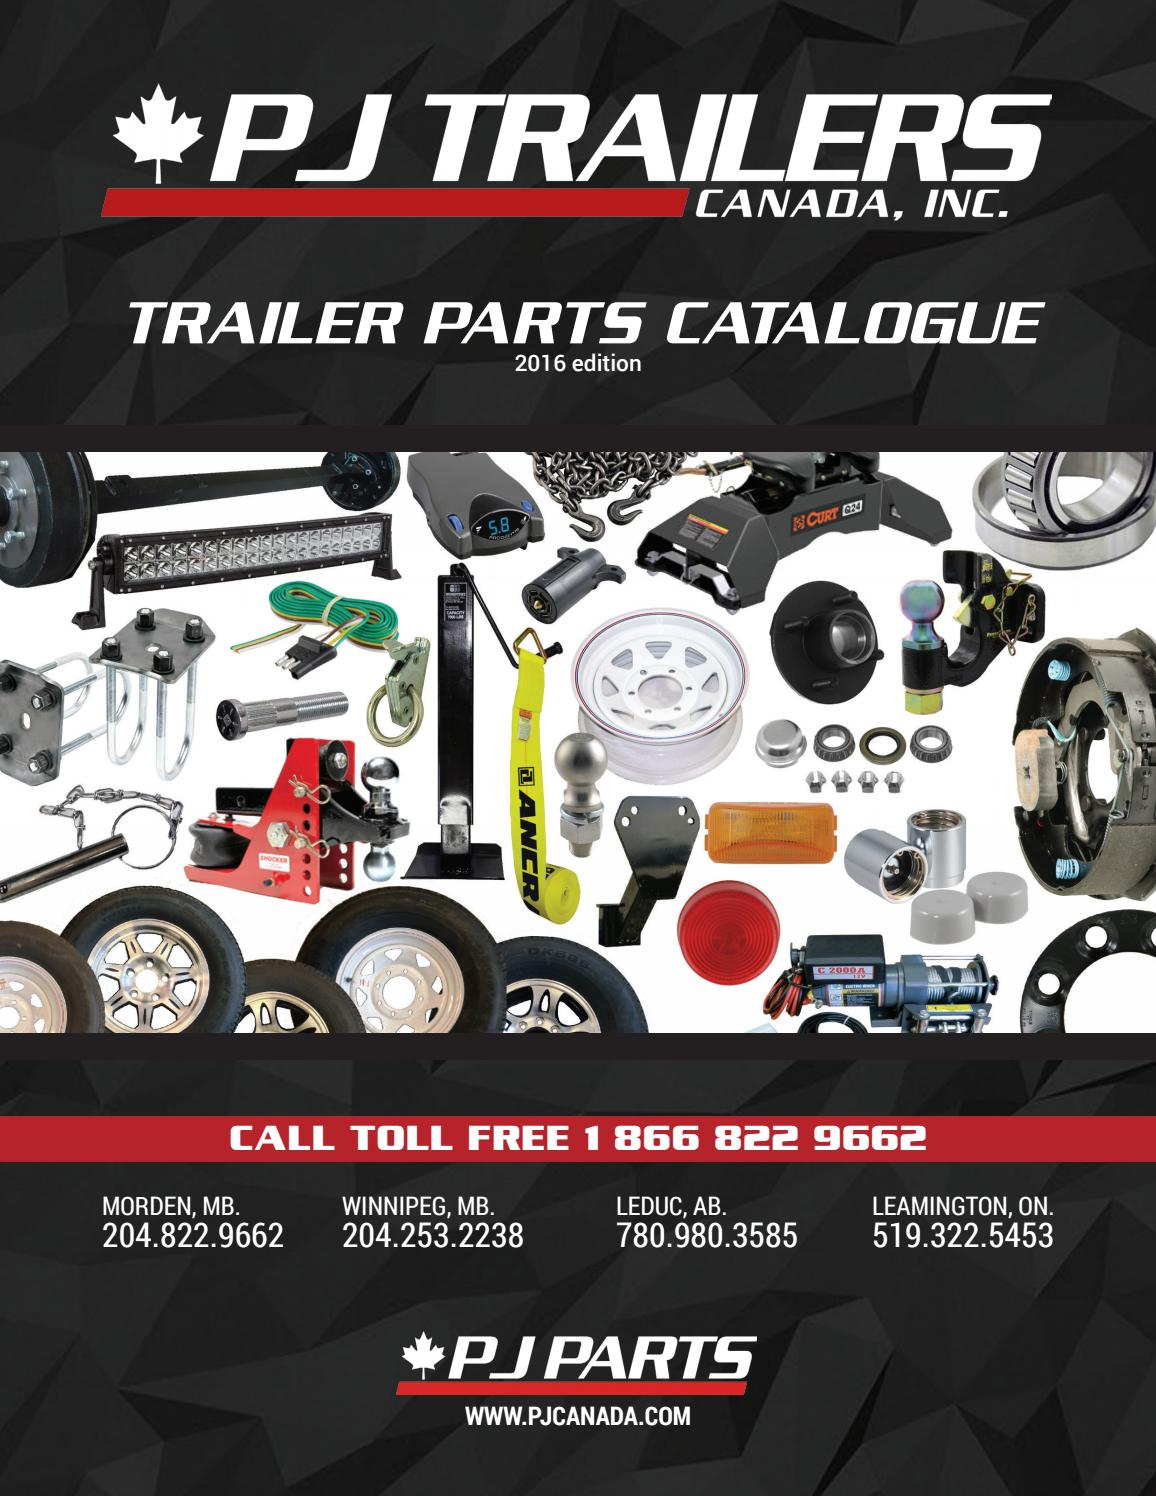 PJ Trailers Canada - Trailer Parts Catalogue by PJ Trailers Canada on